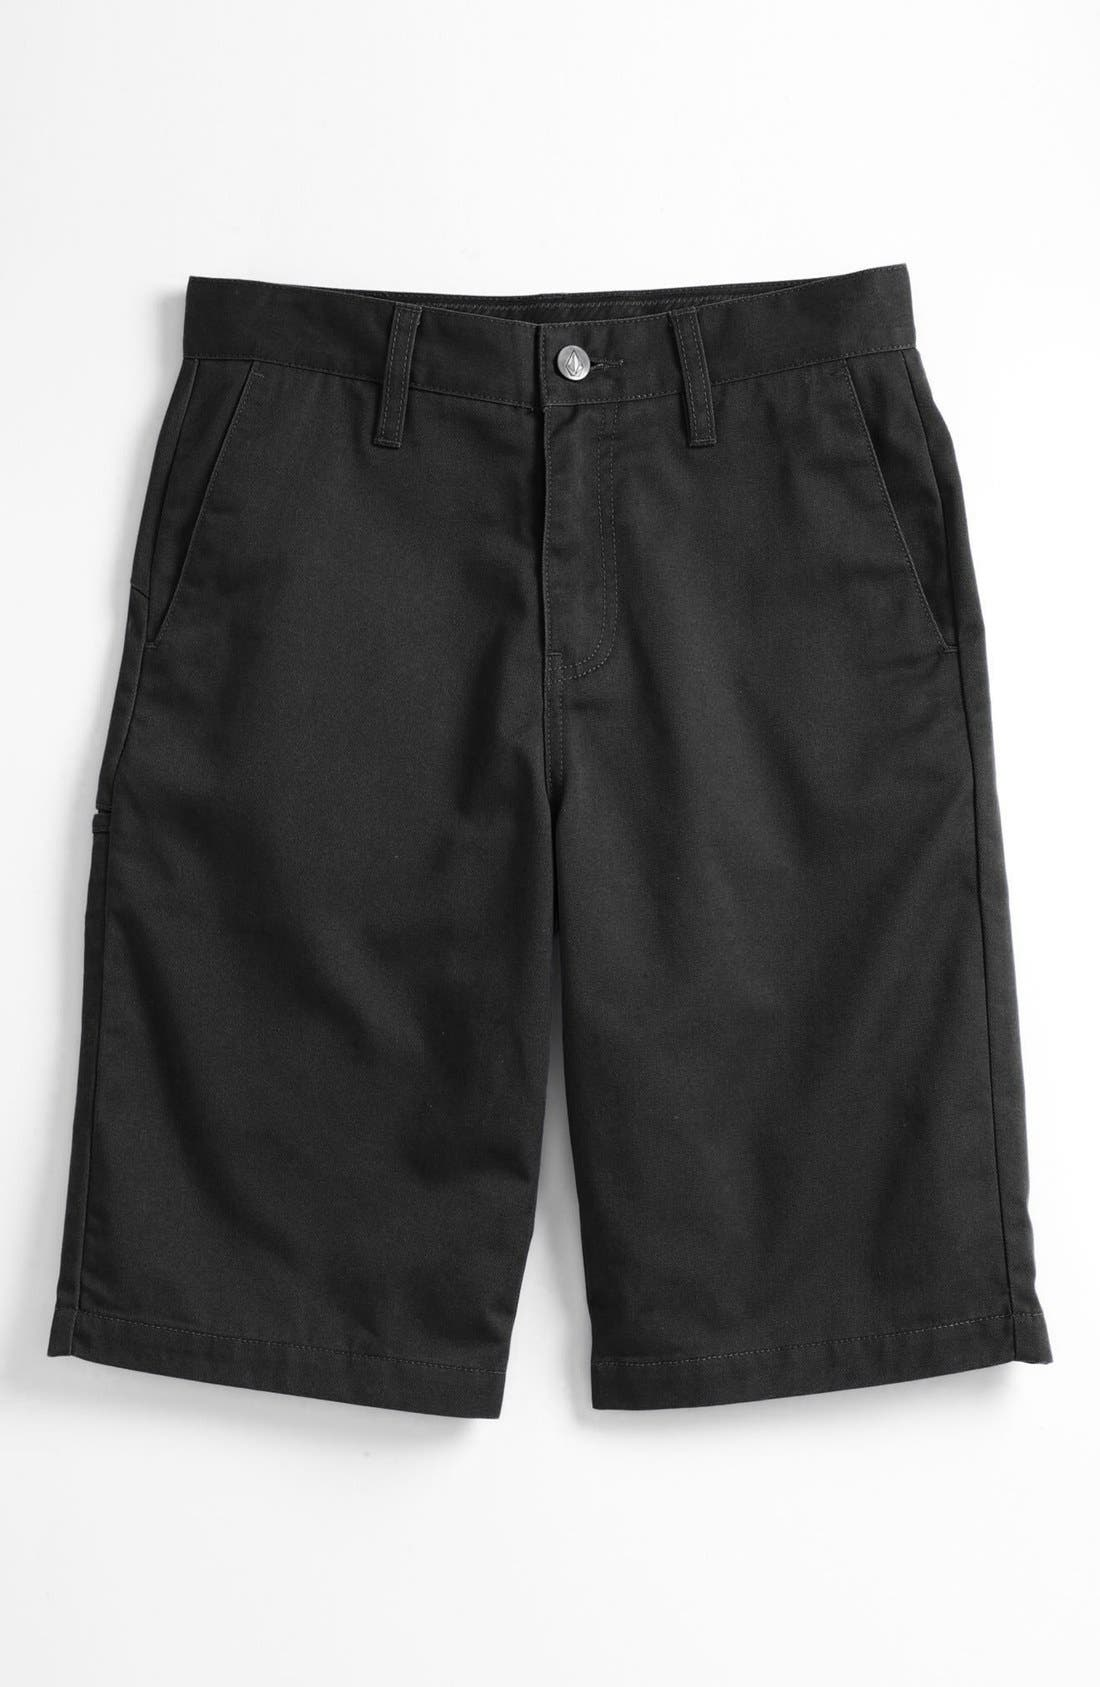 Main Image - Volcom 'Friendly' Chino Shorts (Big Boys)